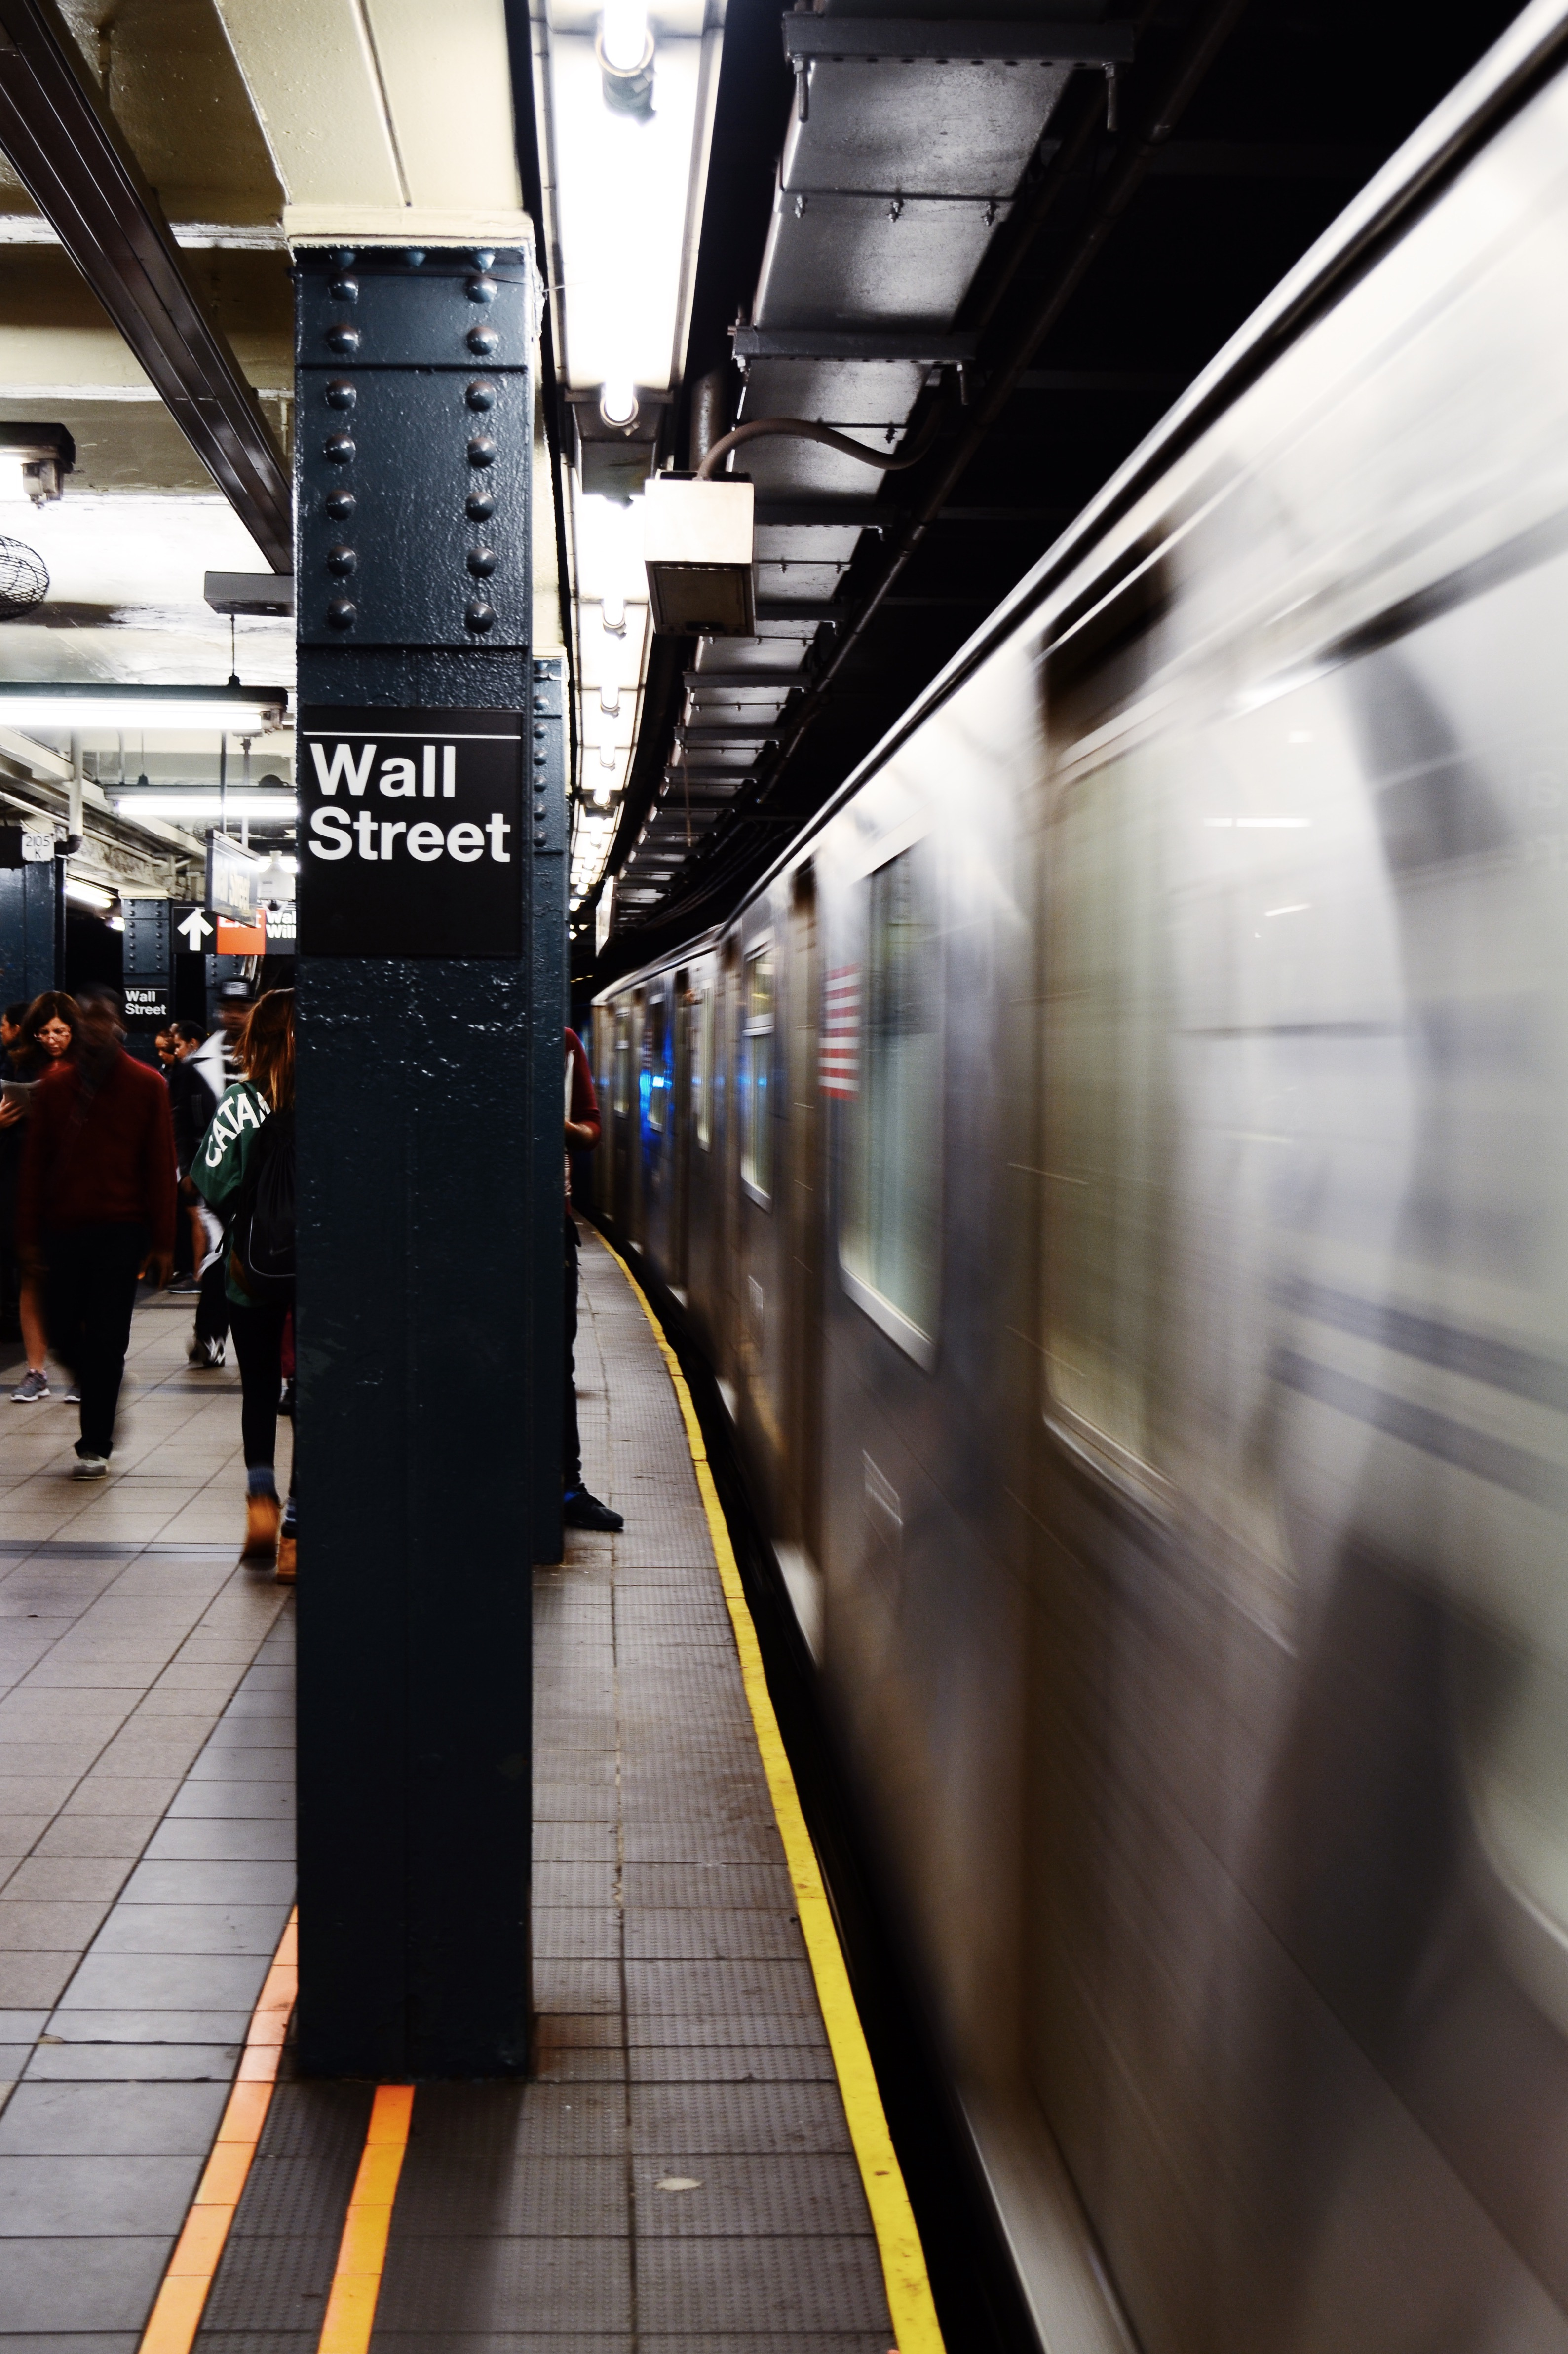 A train coming into Wall Street subway station